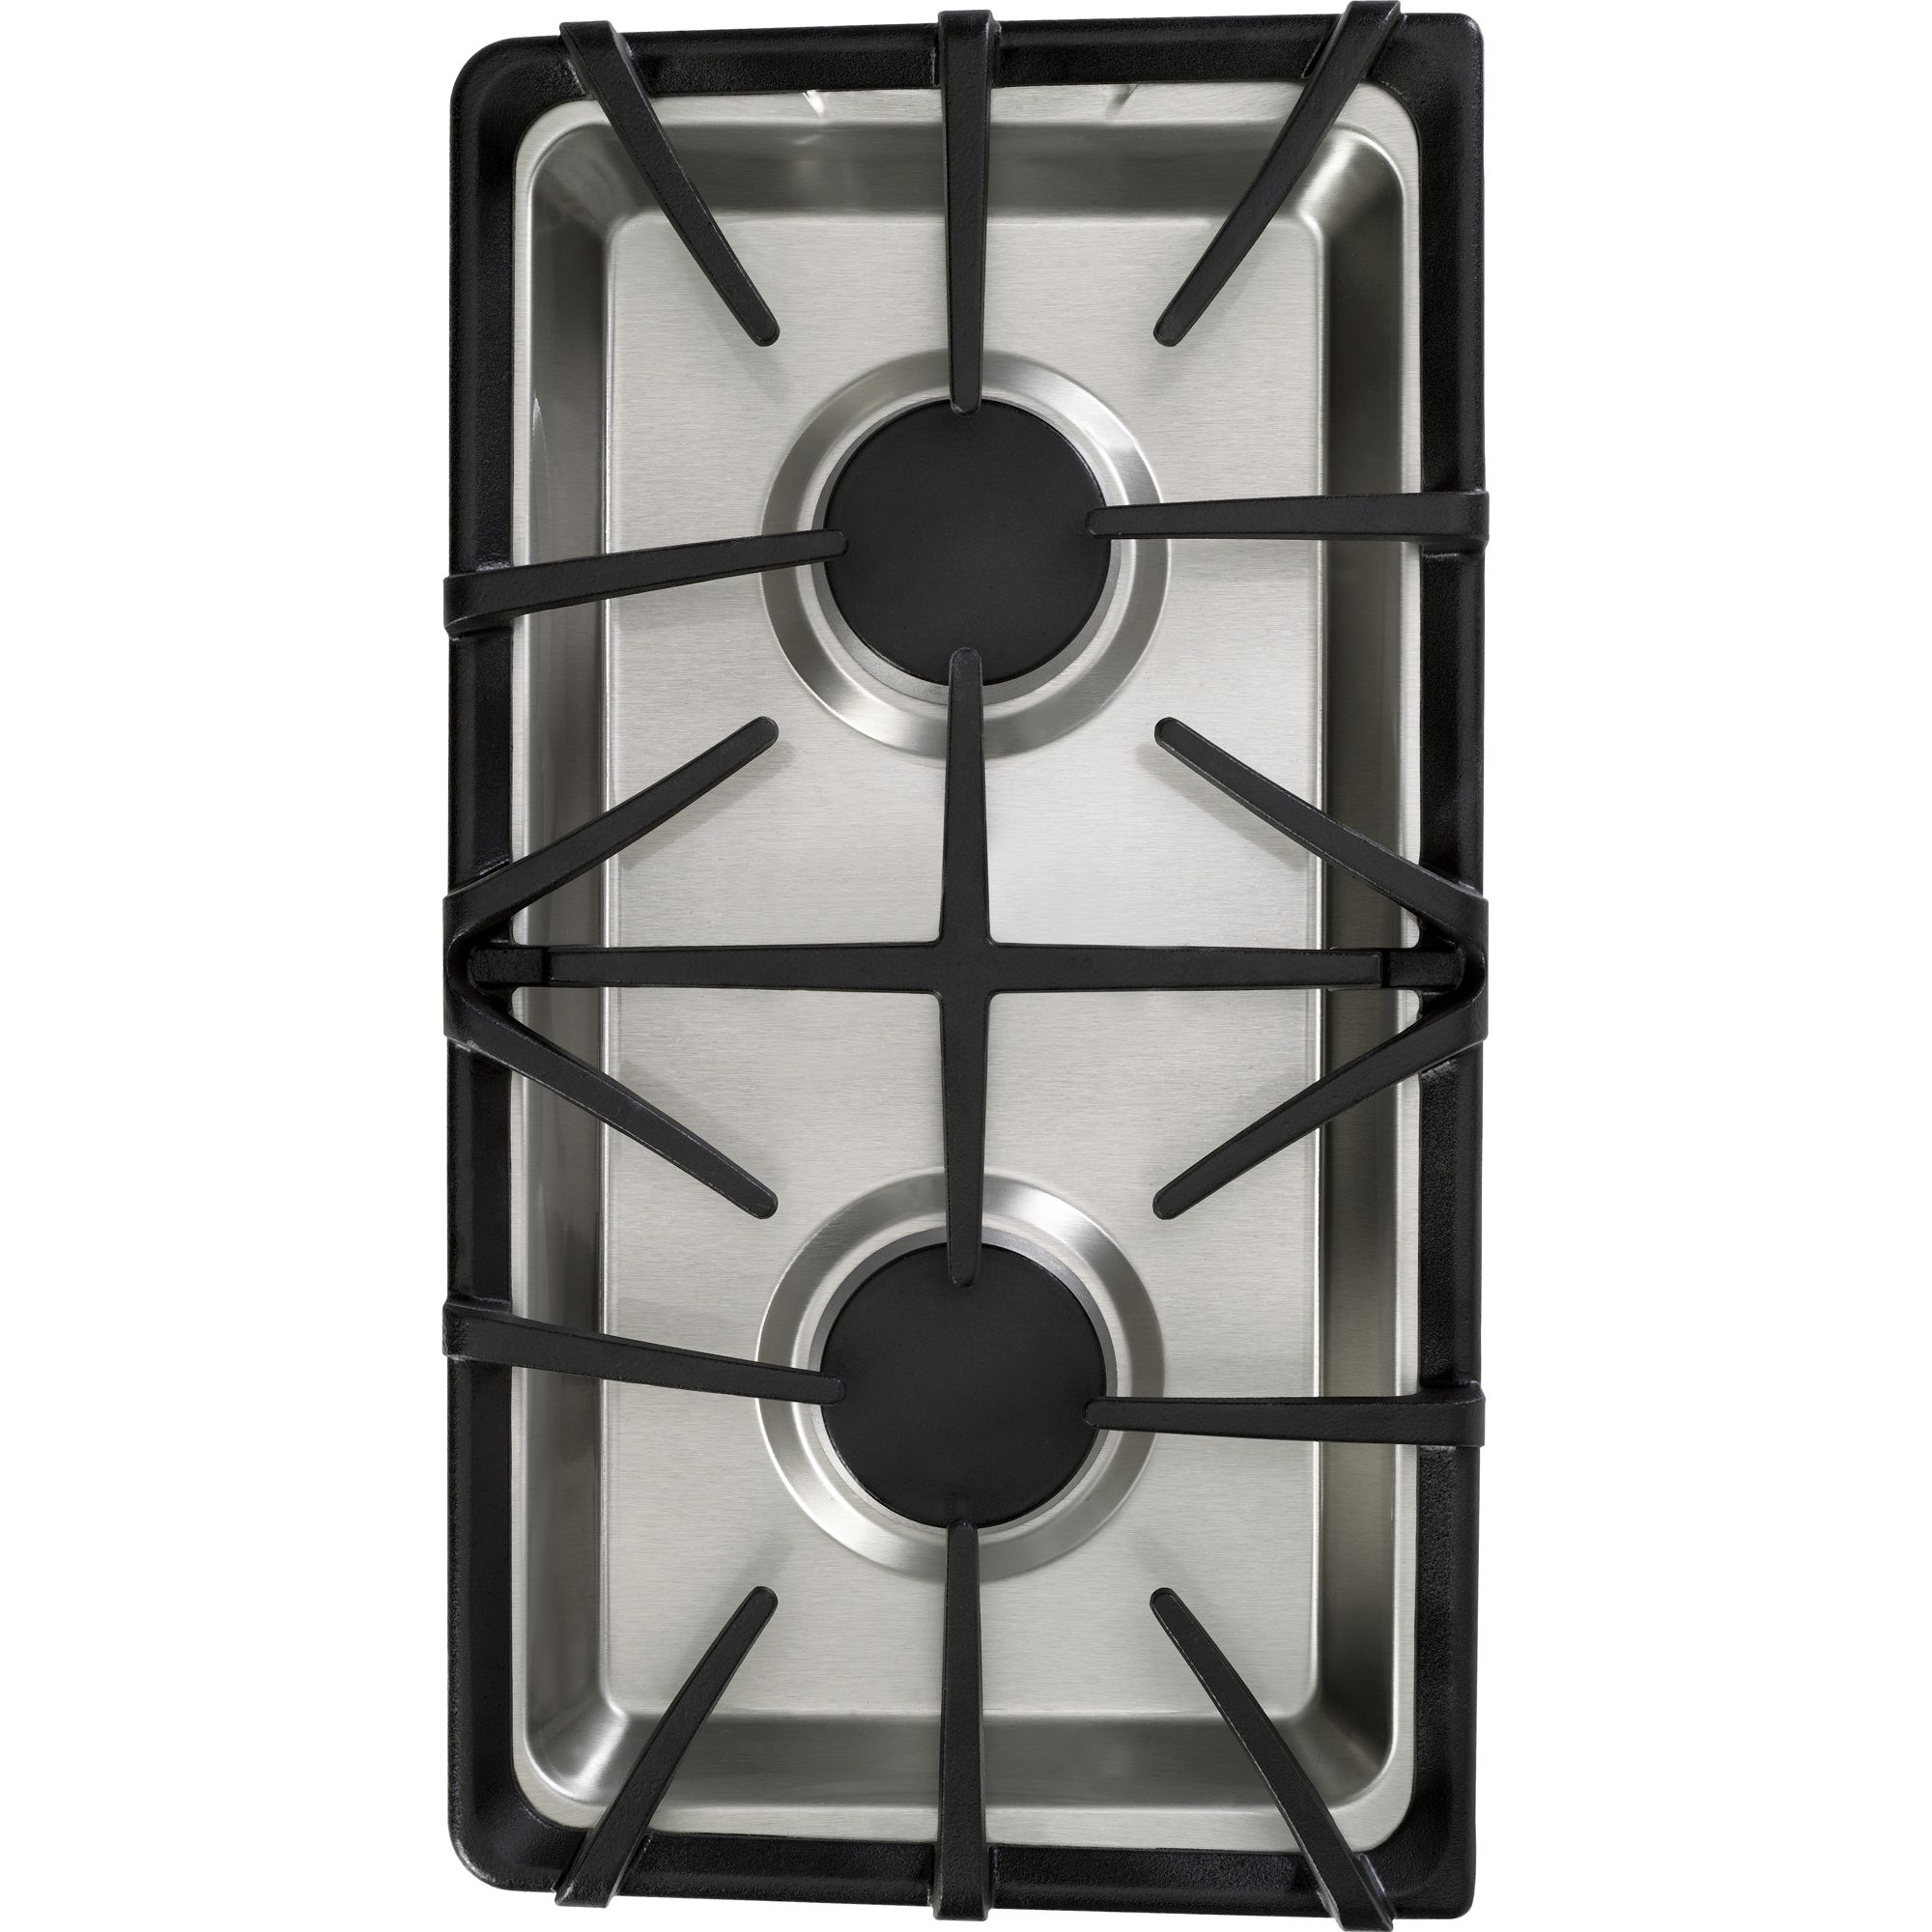 GE - JXGB90S - Gas Cooktop Two-Burner Module | Sears Outlet